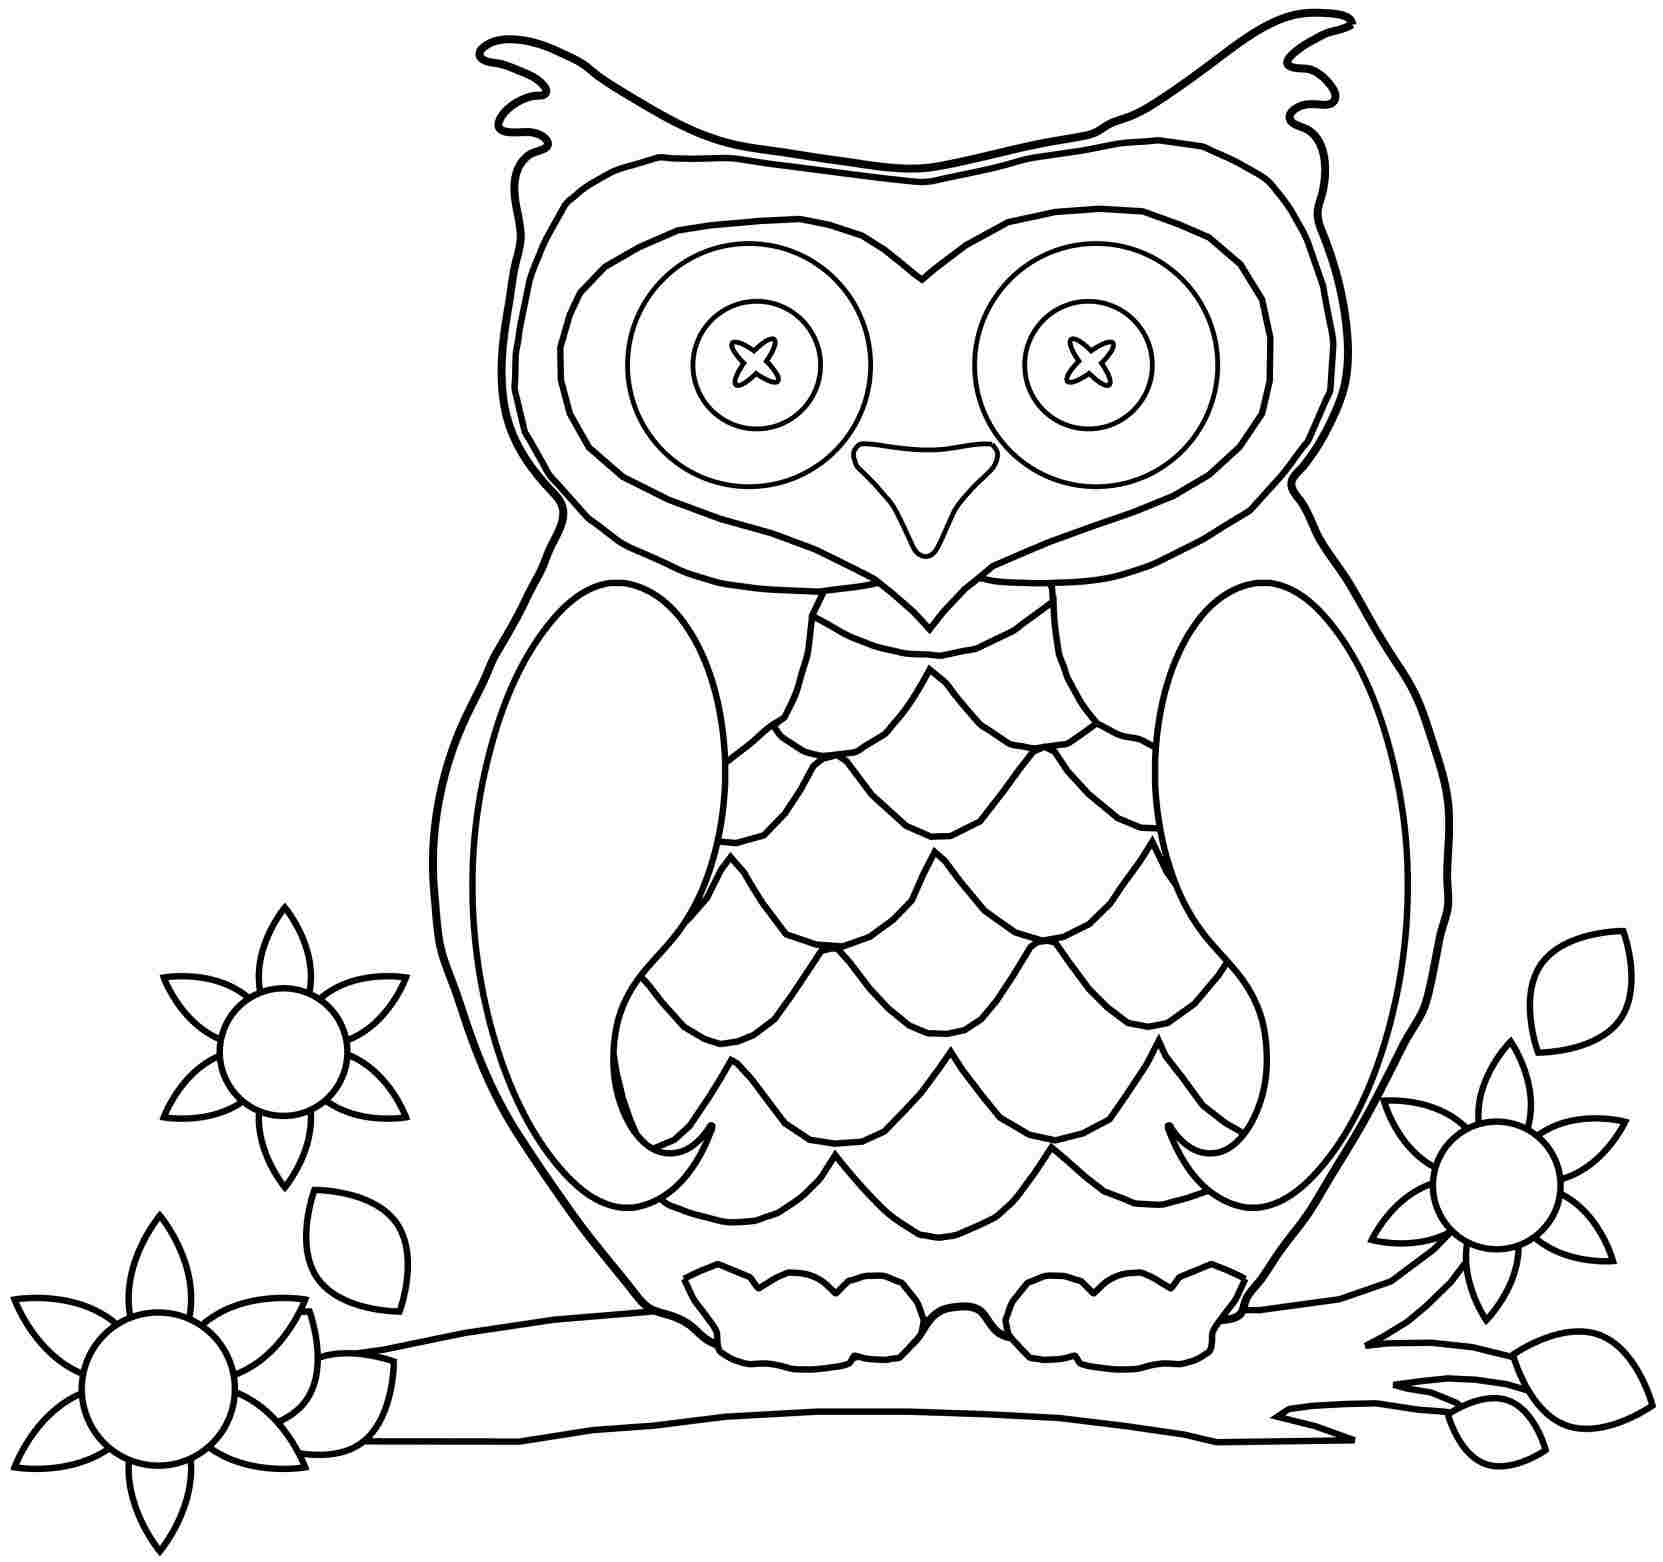 Owl_Coloring_Pages_To_Print_02